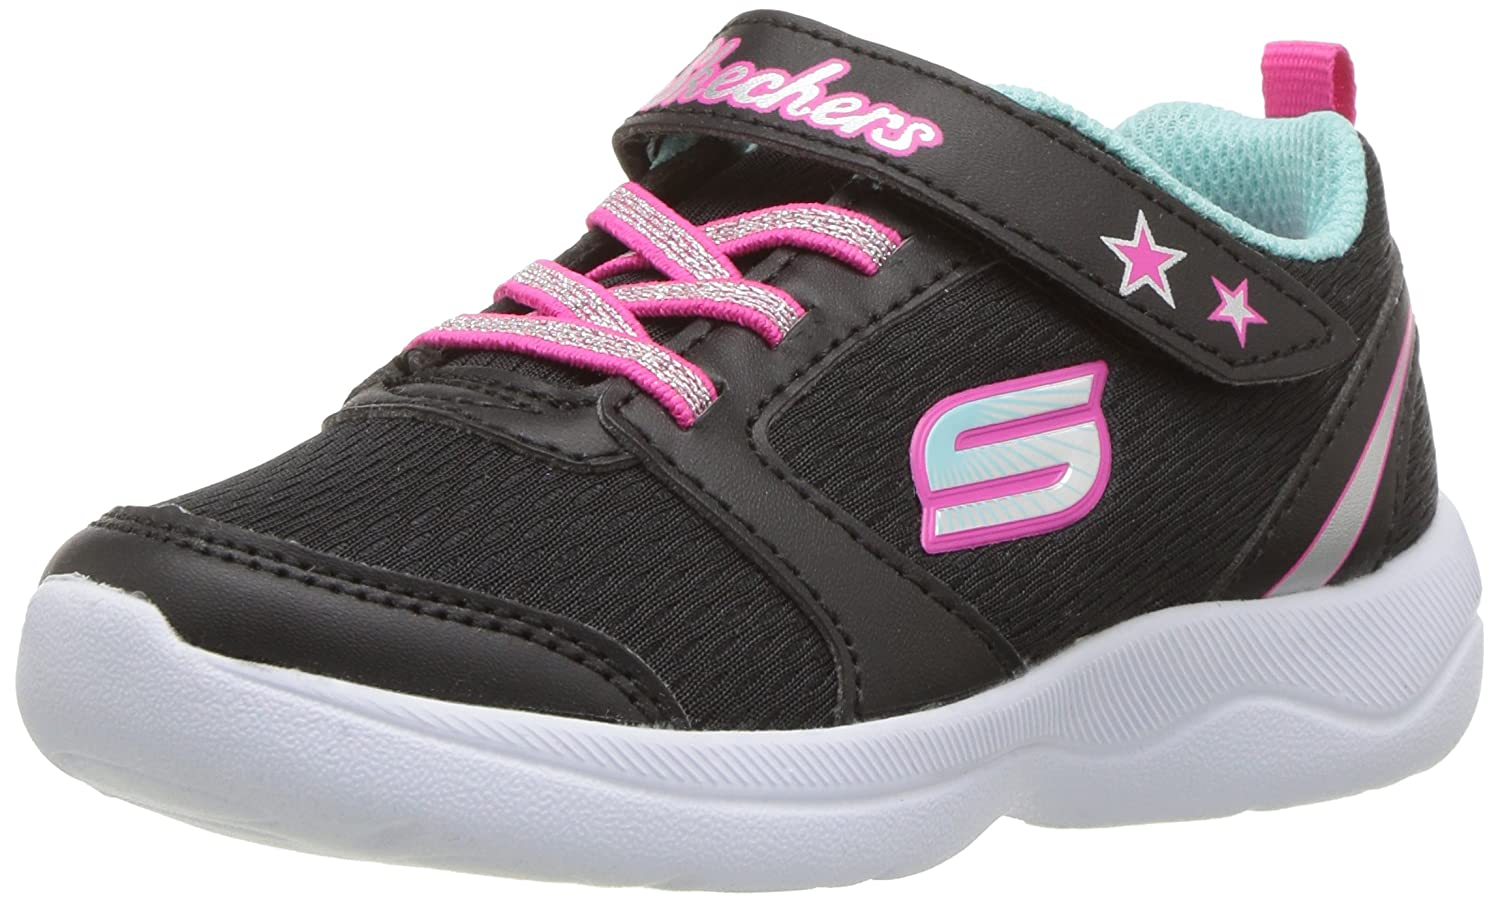 Skechers Kids Girls Skech-Stepz 2.0 Sneaker